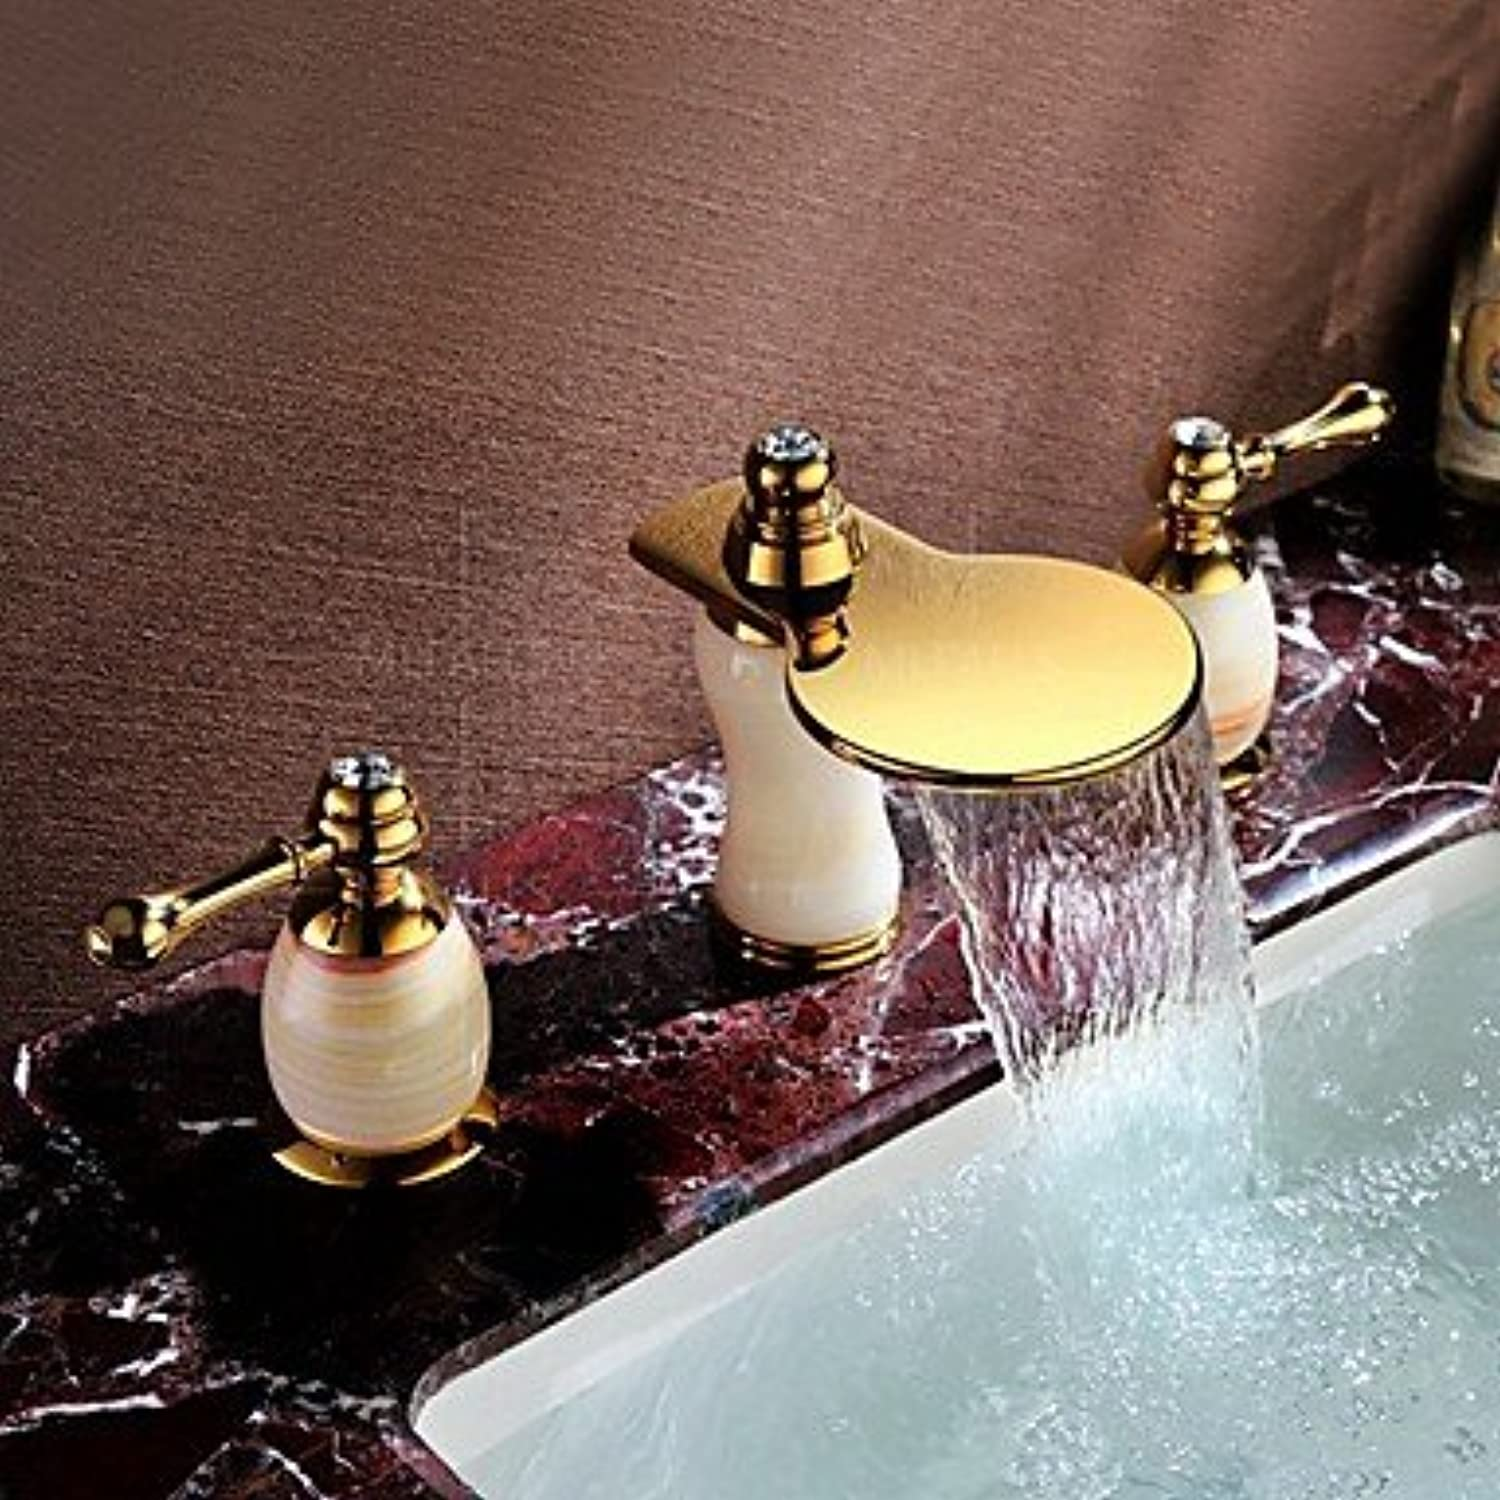 Y&M Faucet£? Universal double bathroom sink faucets in PVD titanium deck three-hole inssizetion